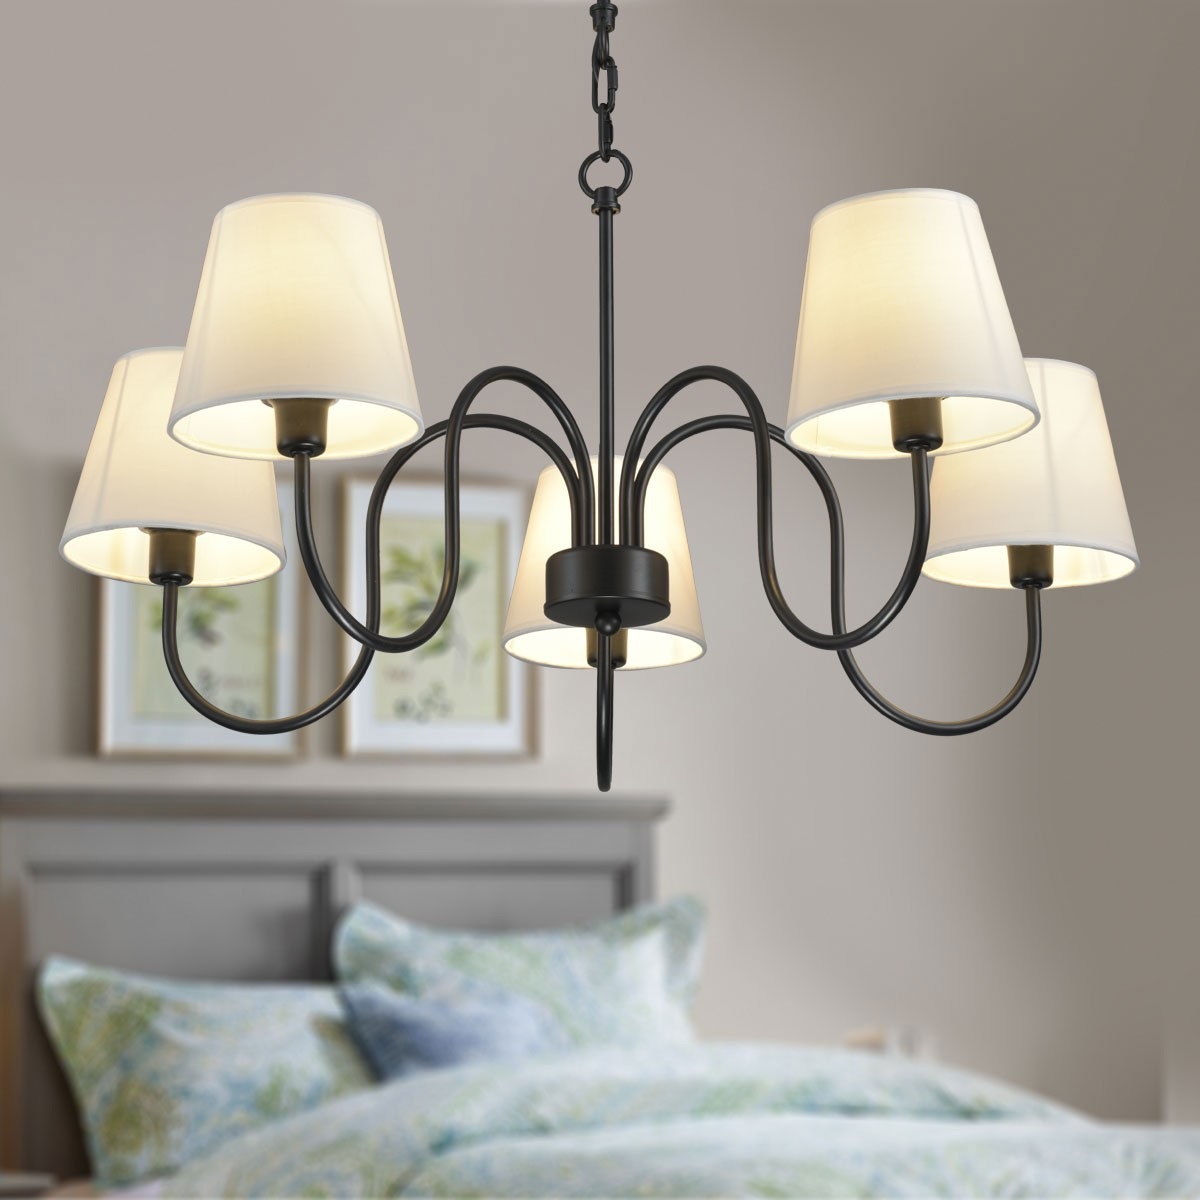 5-Light Black Wrought Iron Chandelier with Cloth Shades (DK-7059-5)